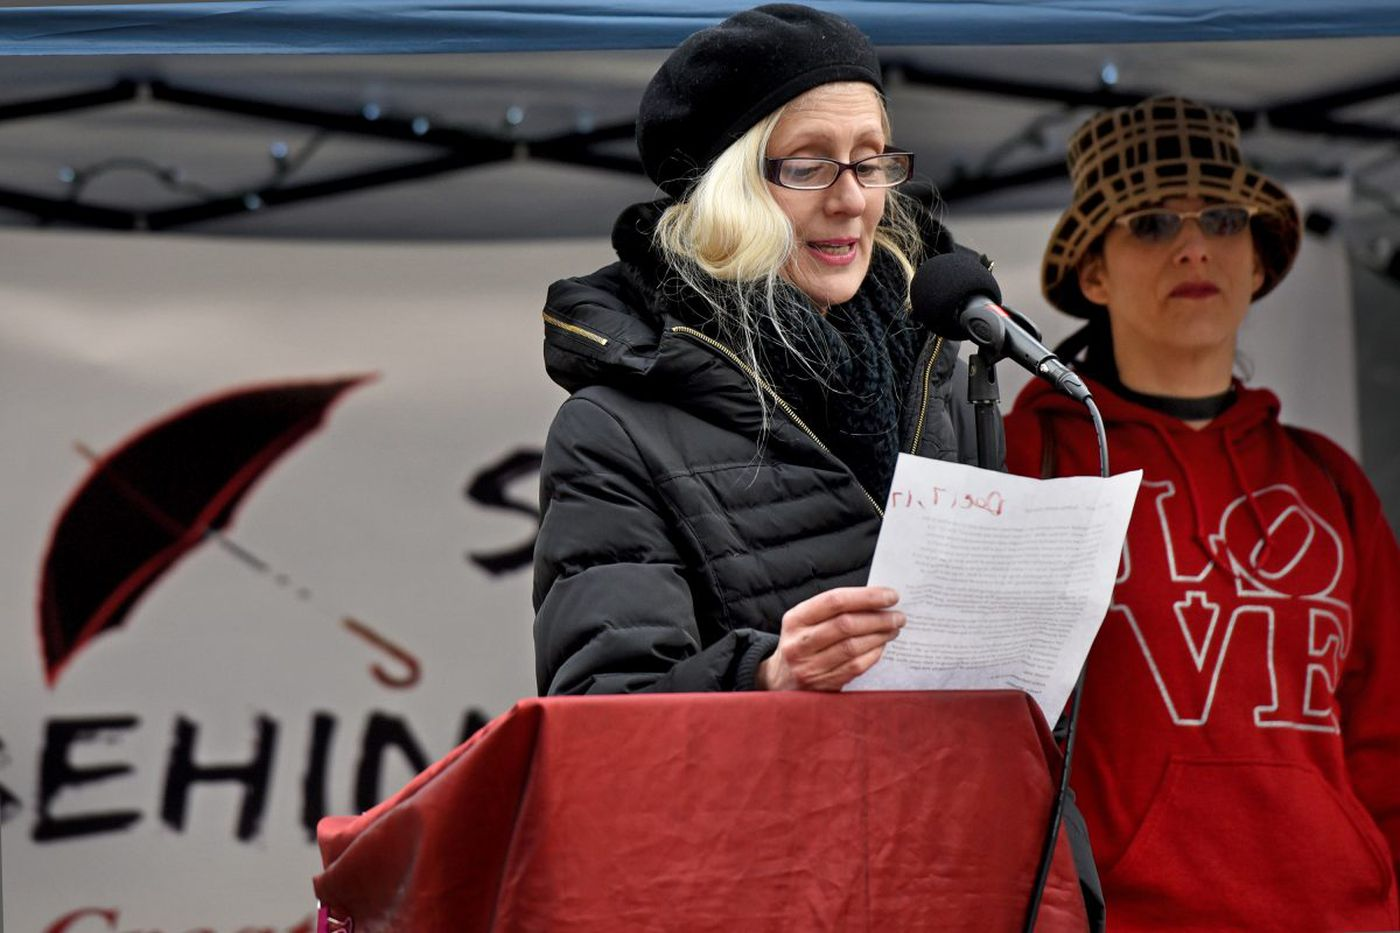 Sex workers victimized by violence remembered at Philadelphia vigil